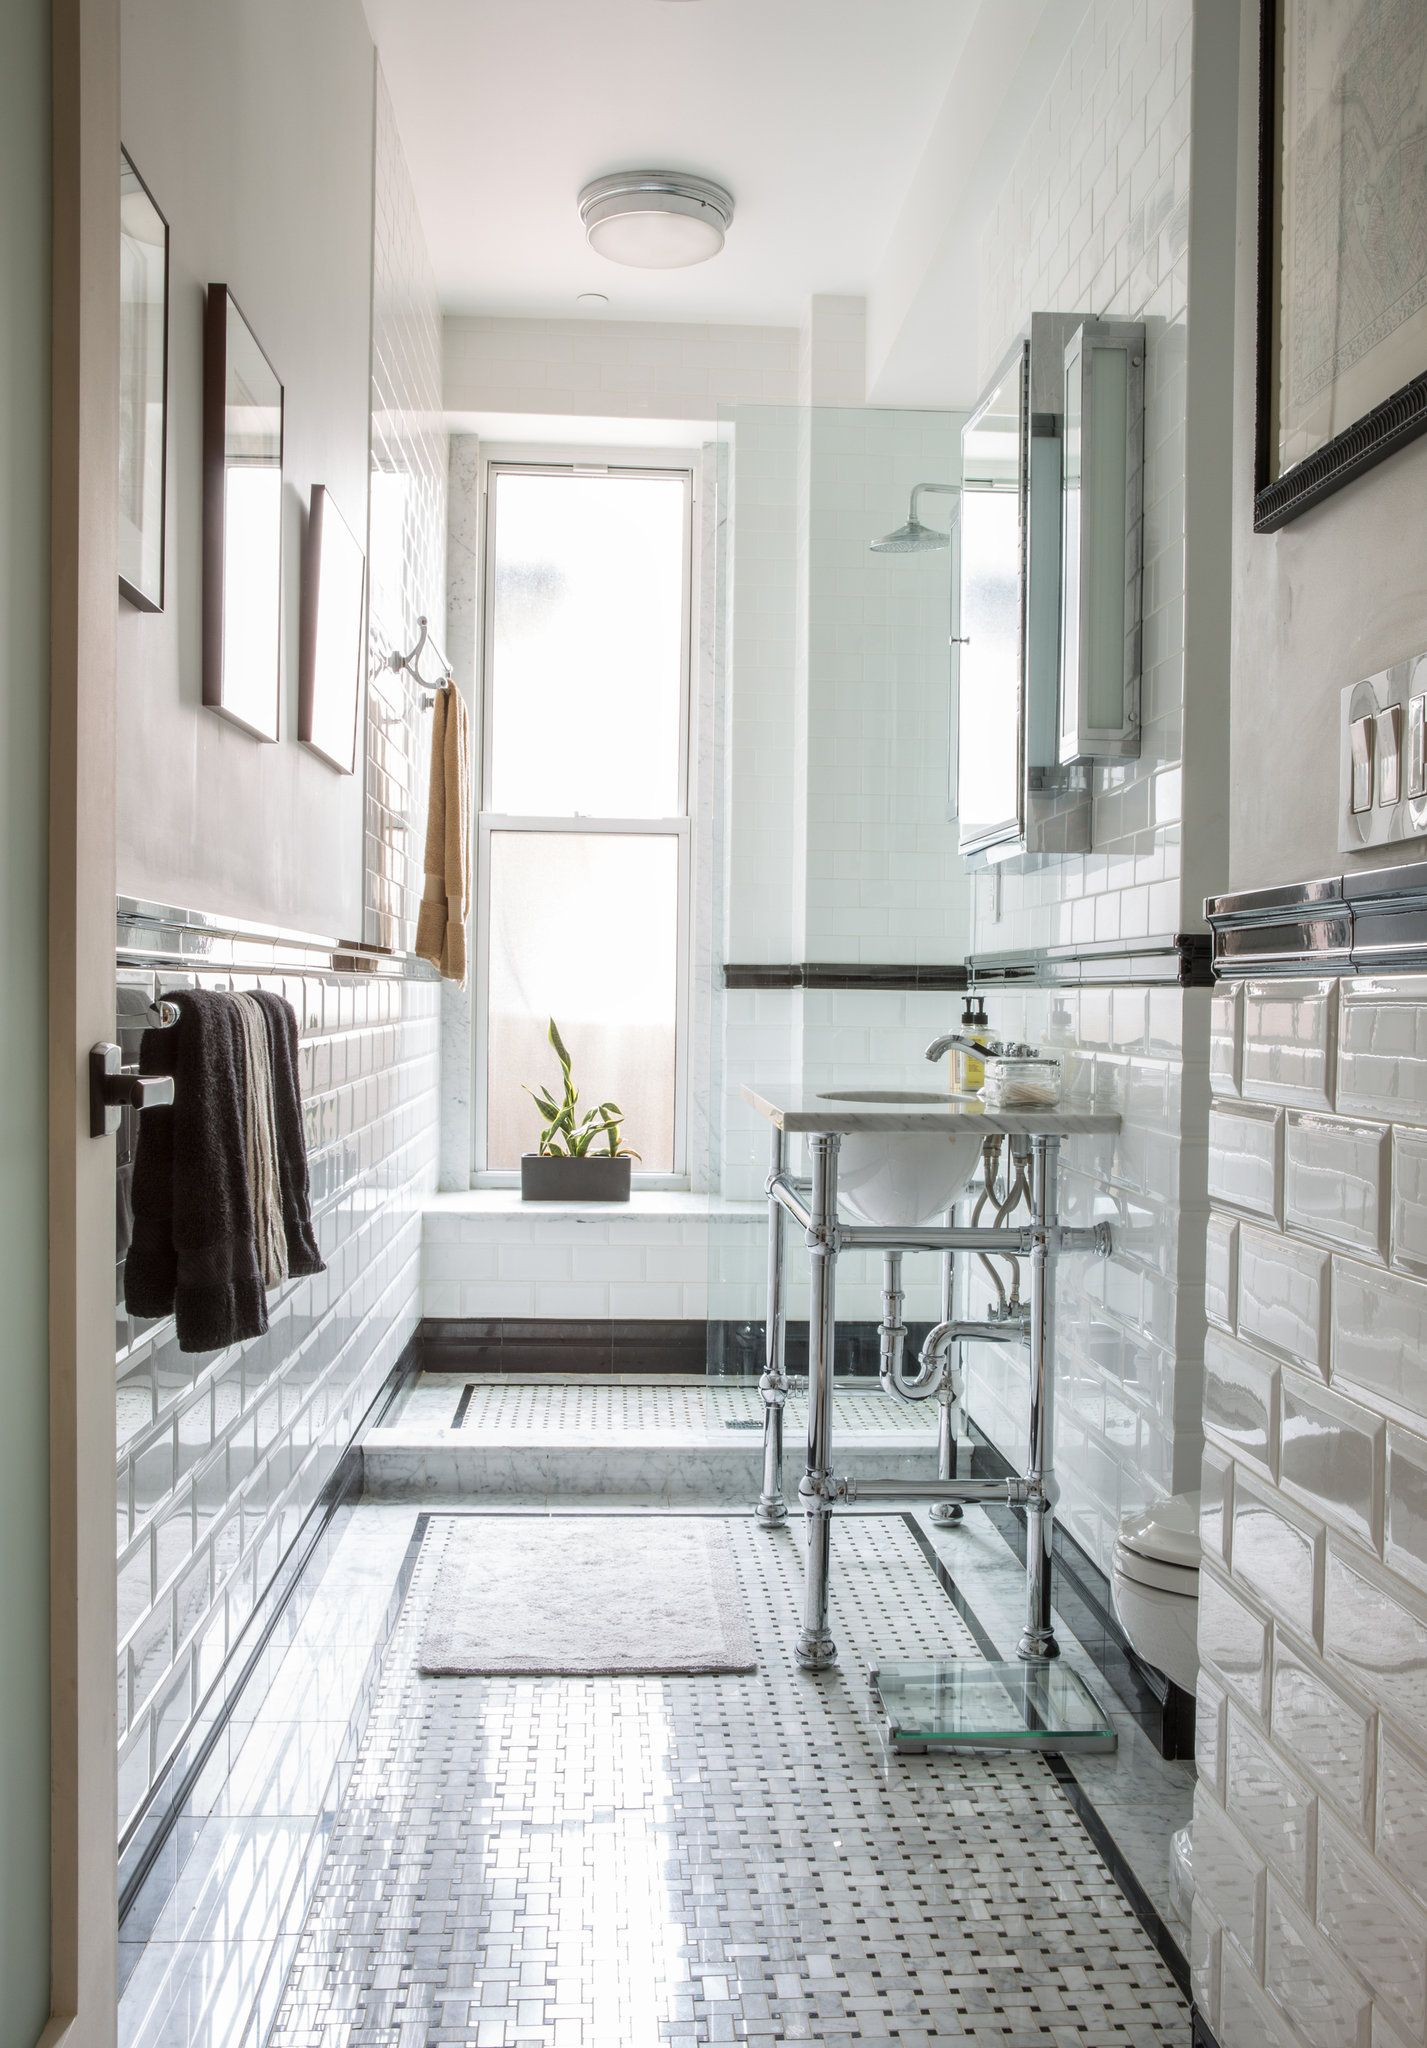 spaces restroom idea renov updates renovating of remodel wall bathroom update low ideas remodeling under ways latest bathrooms diy showers super remodeled decorating beautiful remodels decorate timeline tight updating simple design posts renovation on a